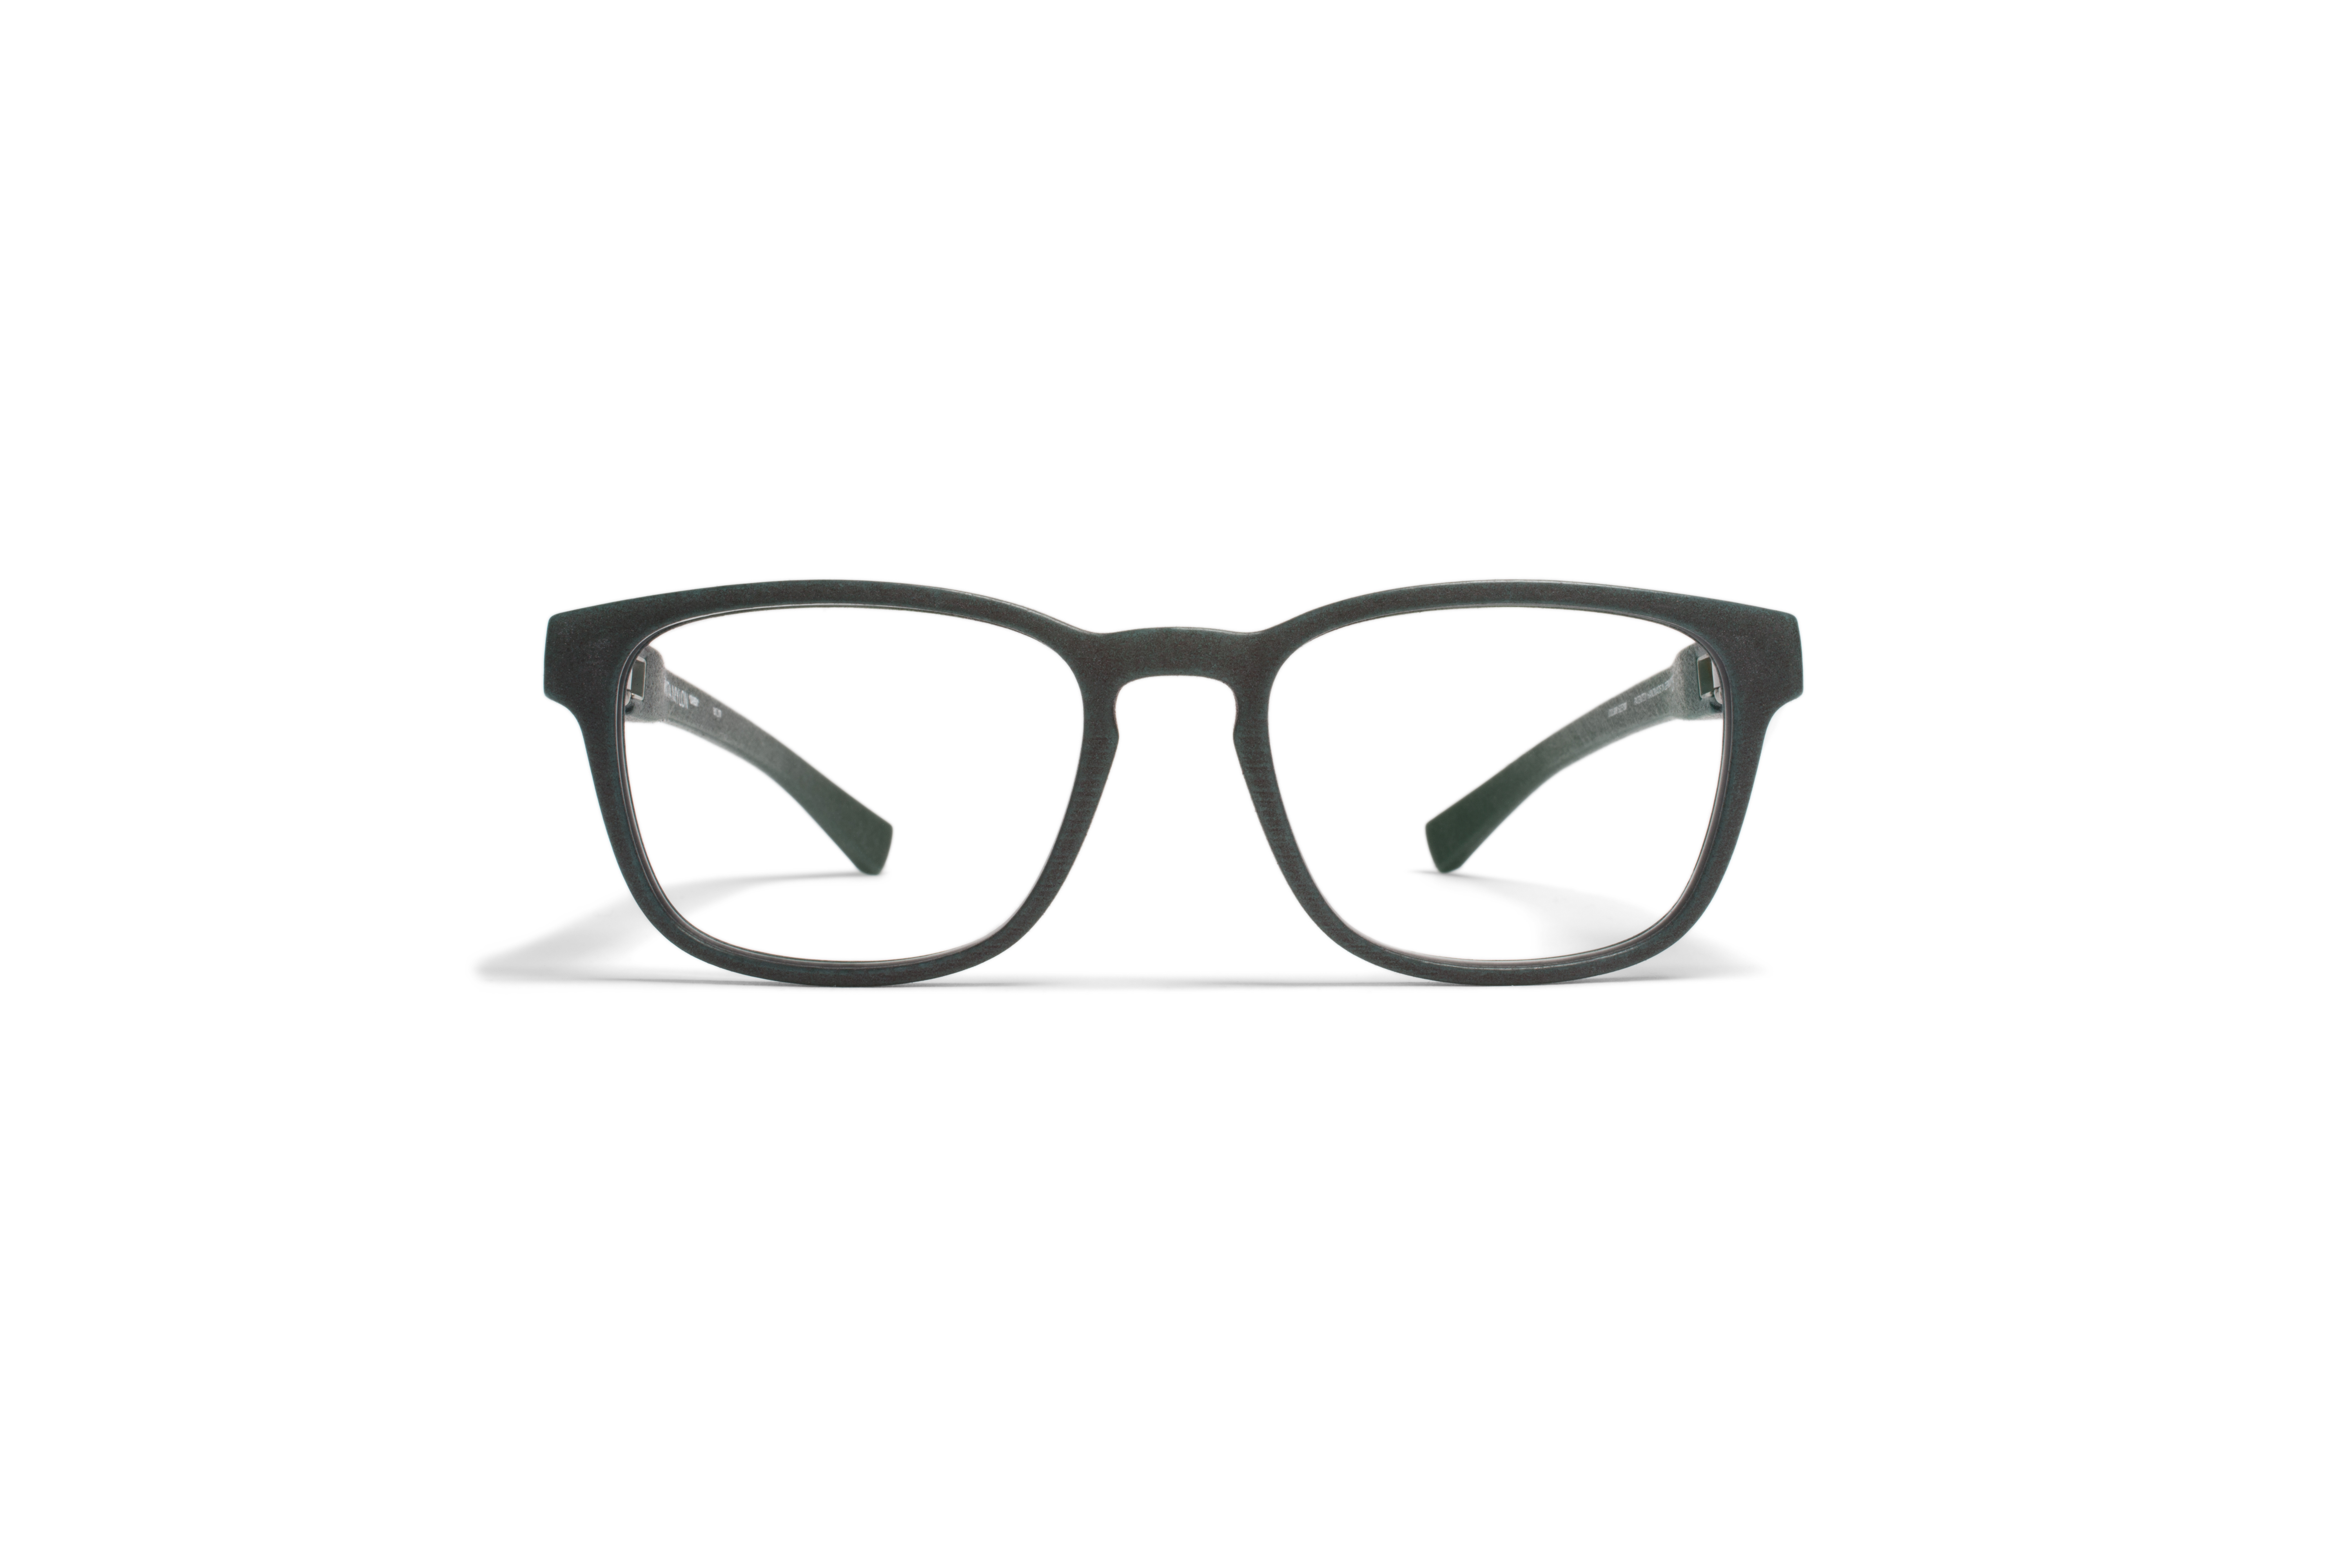 MYKITA Mylon Rx Zaren Md8 Storm Grey Clear